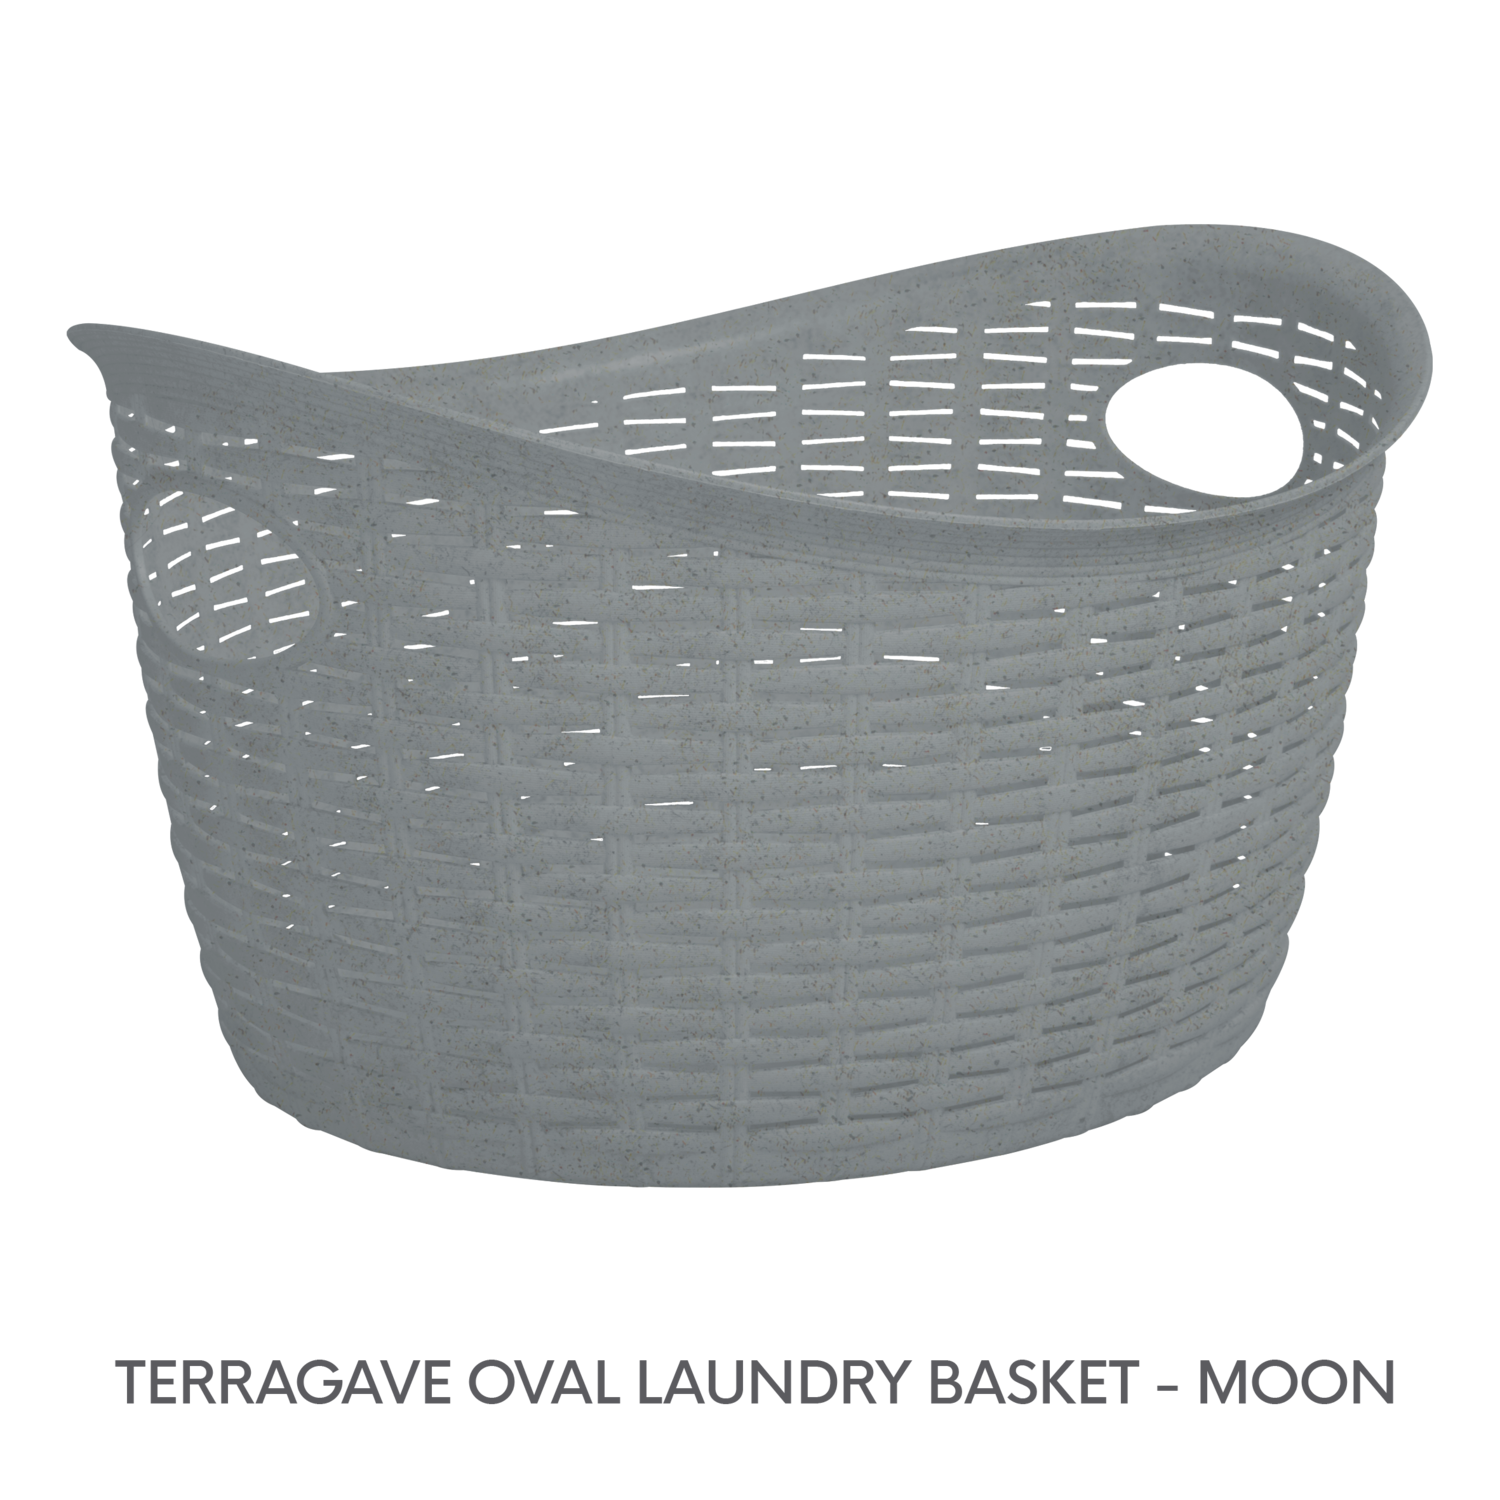 2 TERRAGAVE OVAL LAUNDRY BASKET - MOON.png